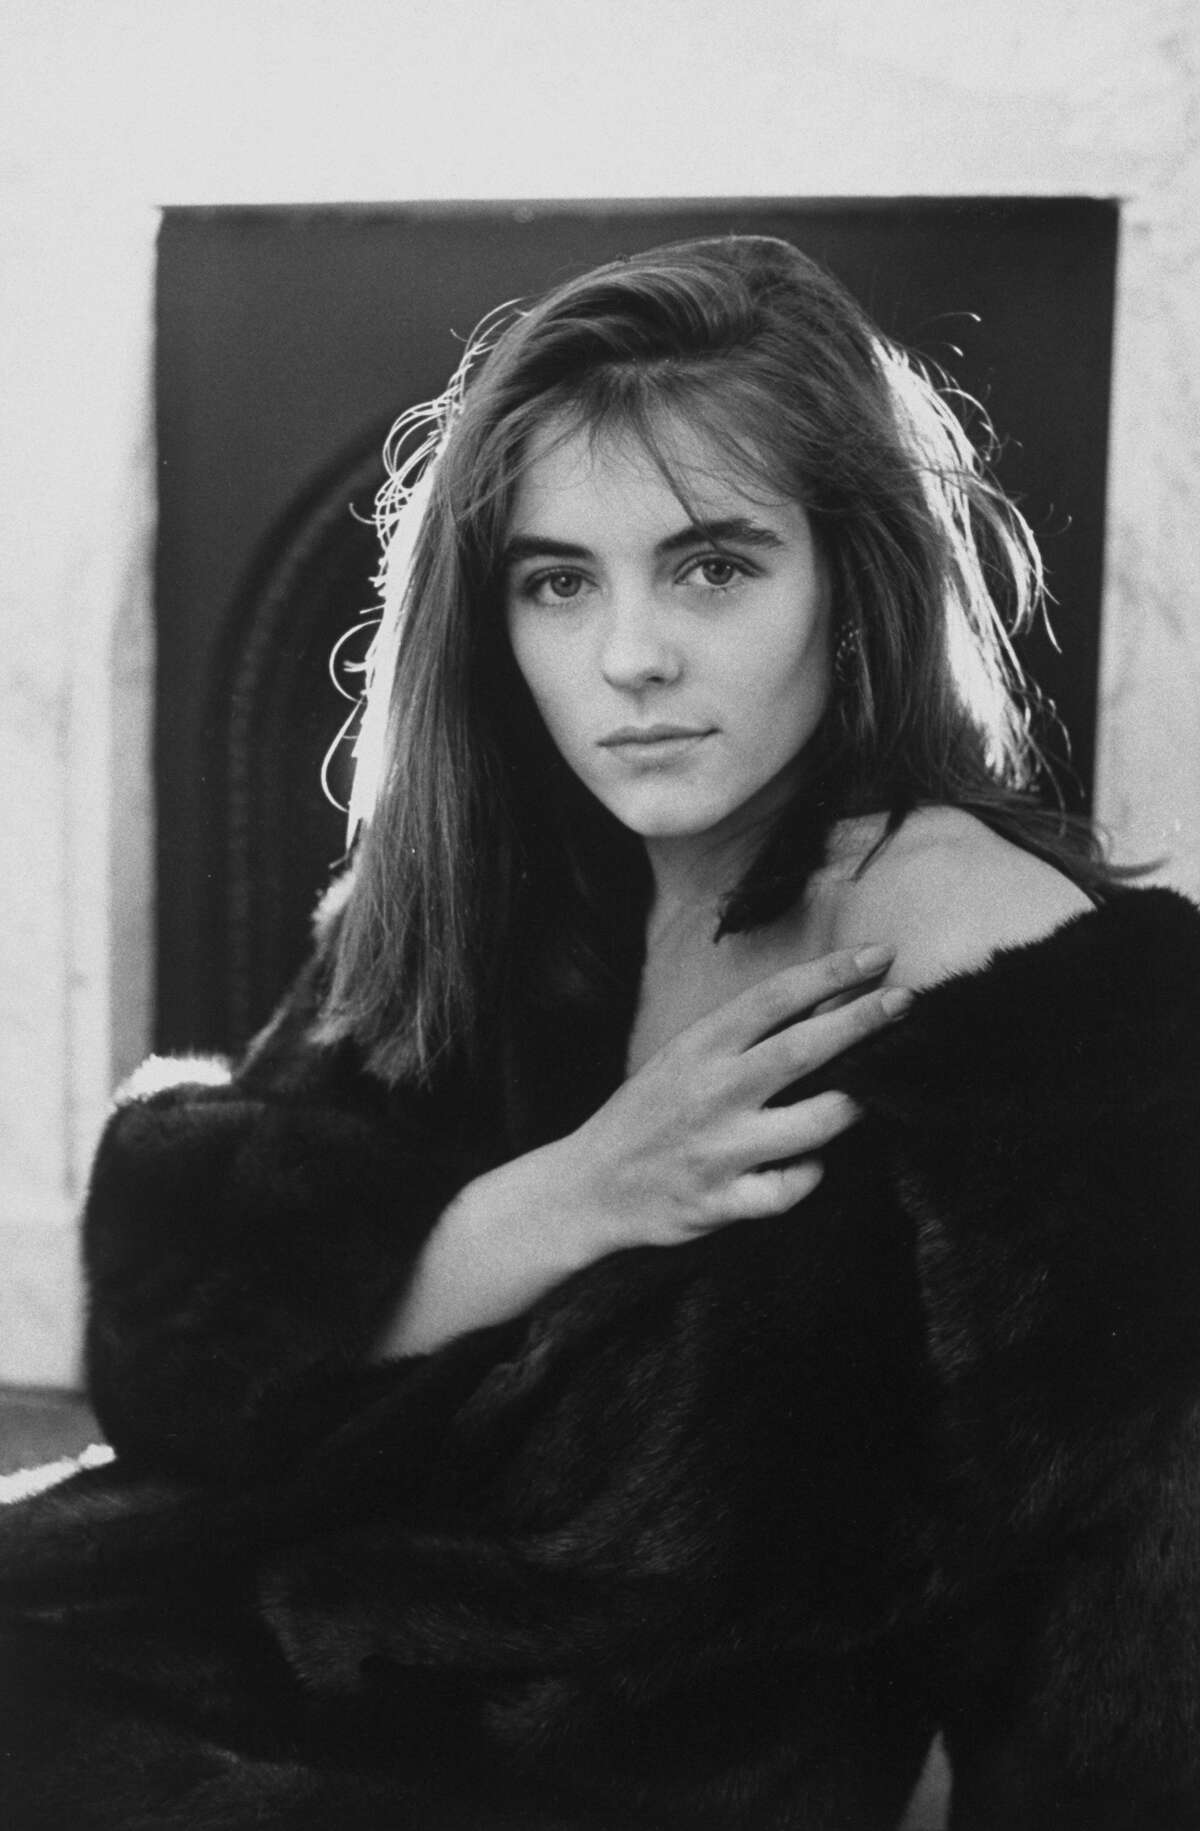 Actress Elizabeth Hurley, born in England on June 10, 1965, is one of the world's most-photographed women despite a career short on thespian excellence. Her most noteworthy roles were, arguably, in a reprise of the Raquel Welch role in the remake of